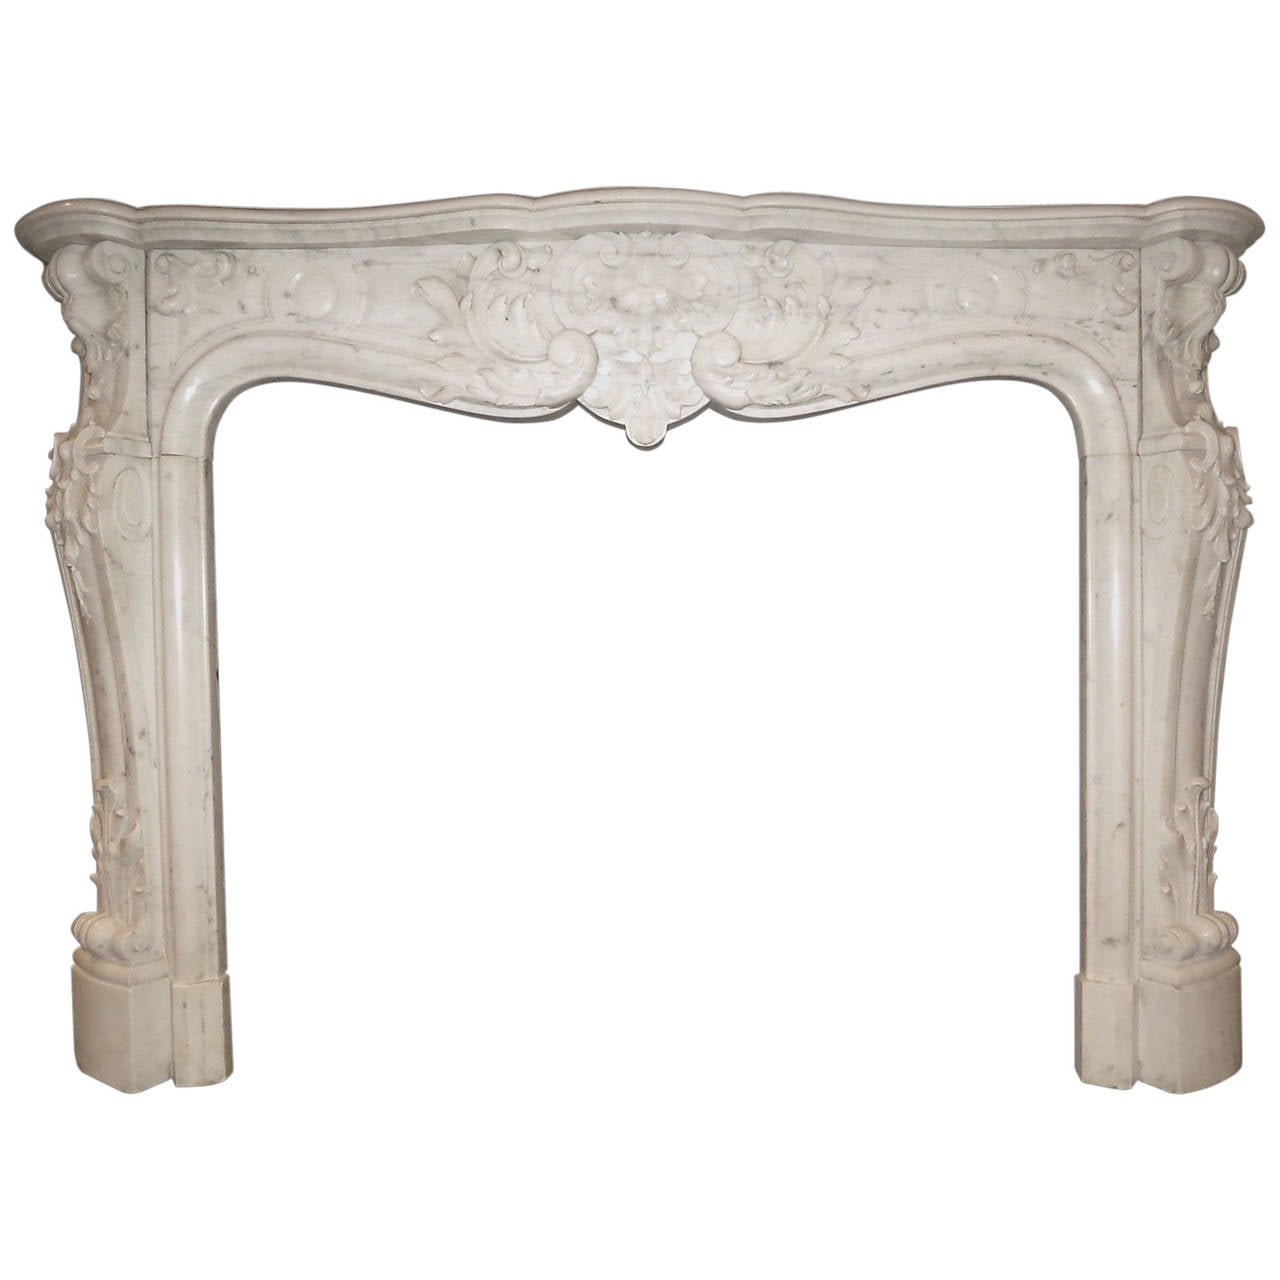 Large Marble Louis Xv Style French Fireplace Mantel At 1stdibs